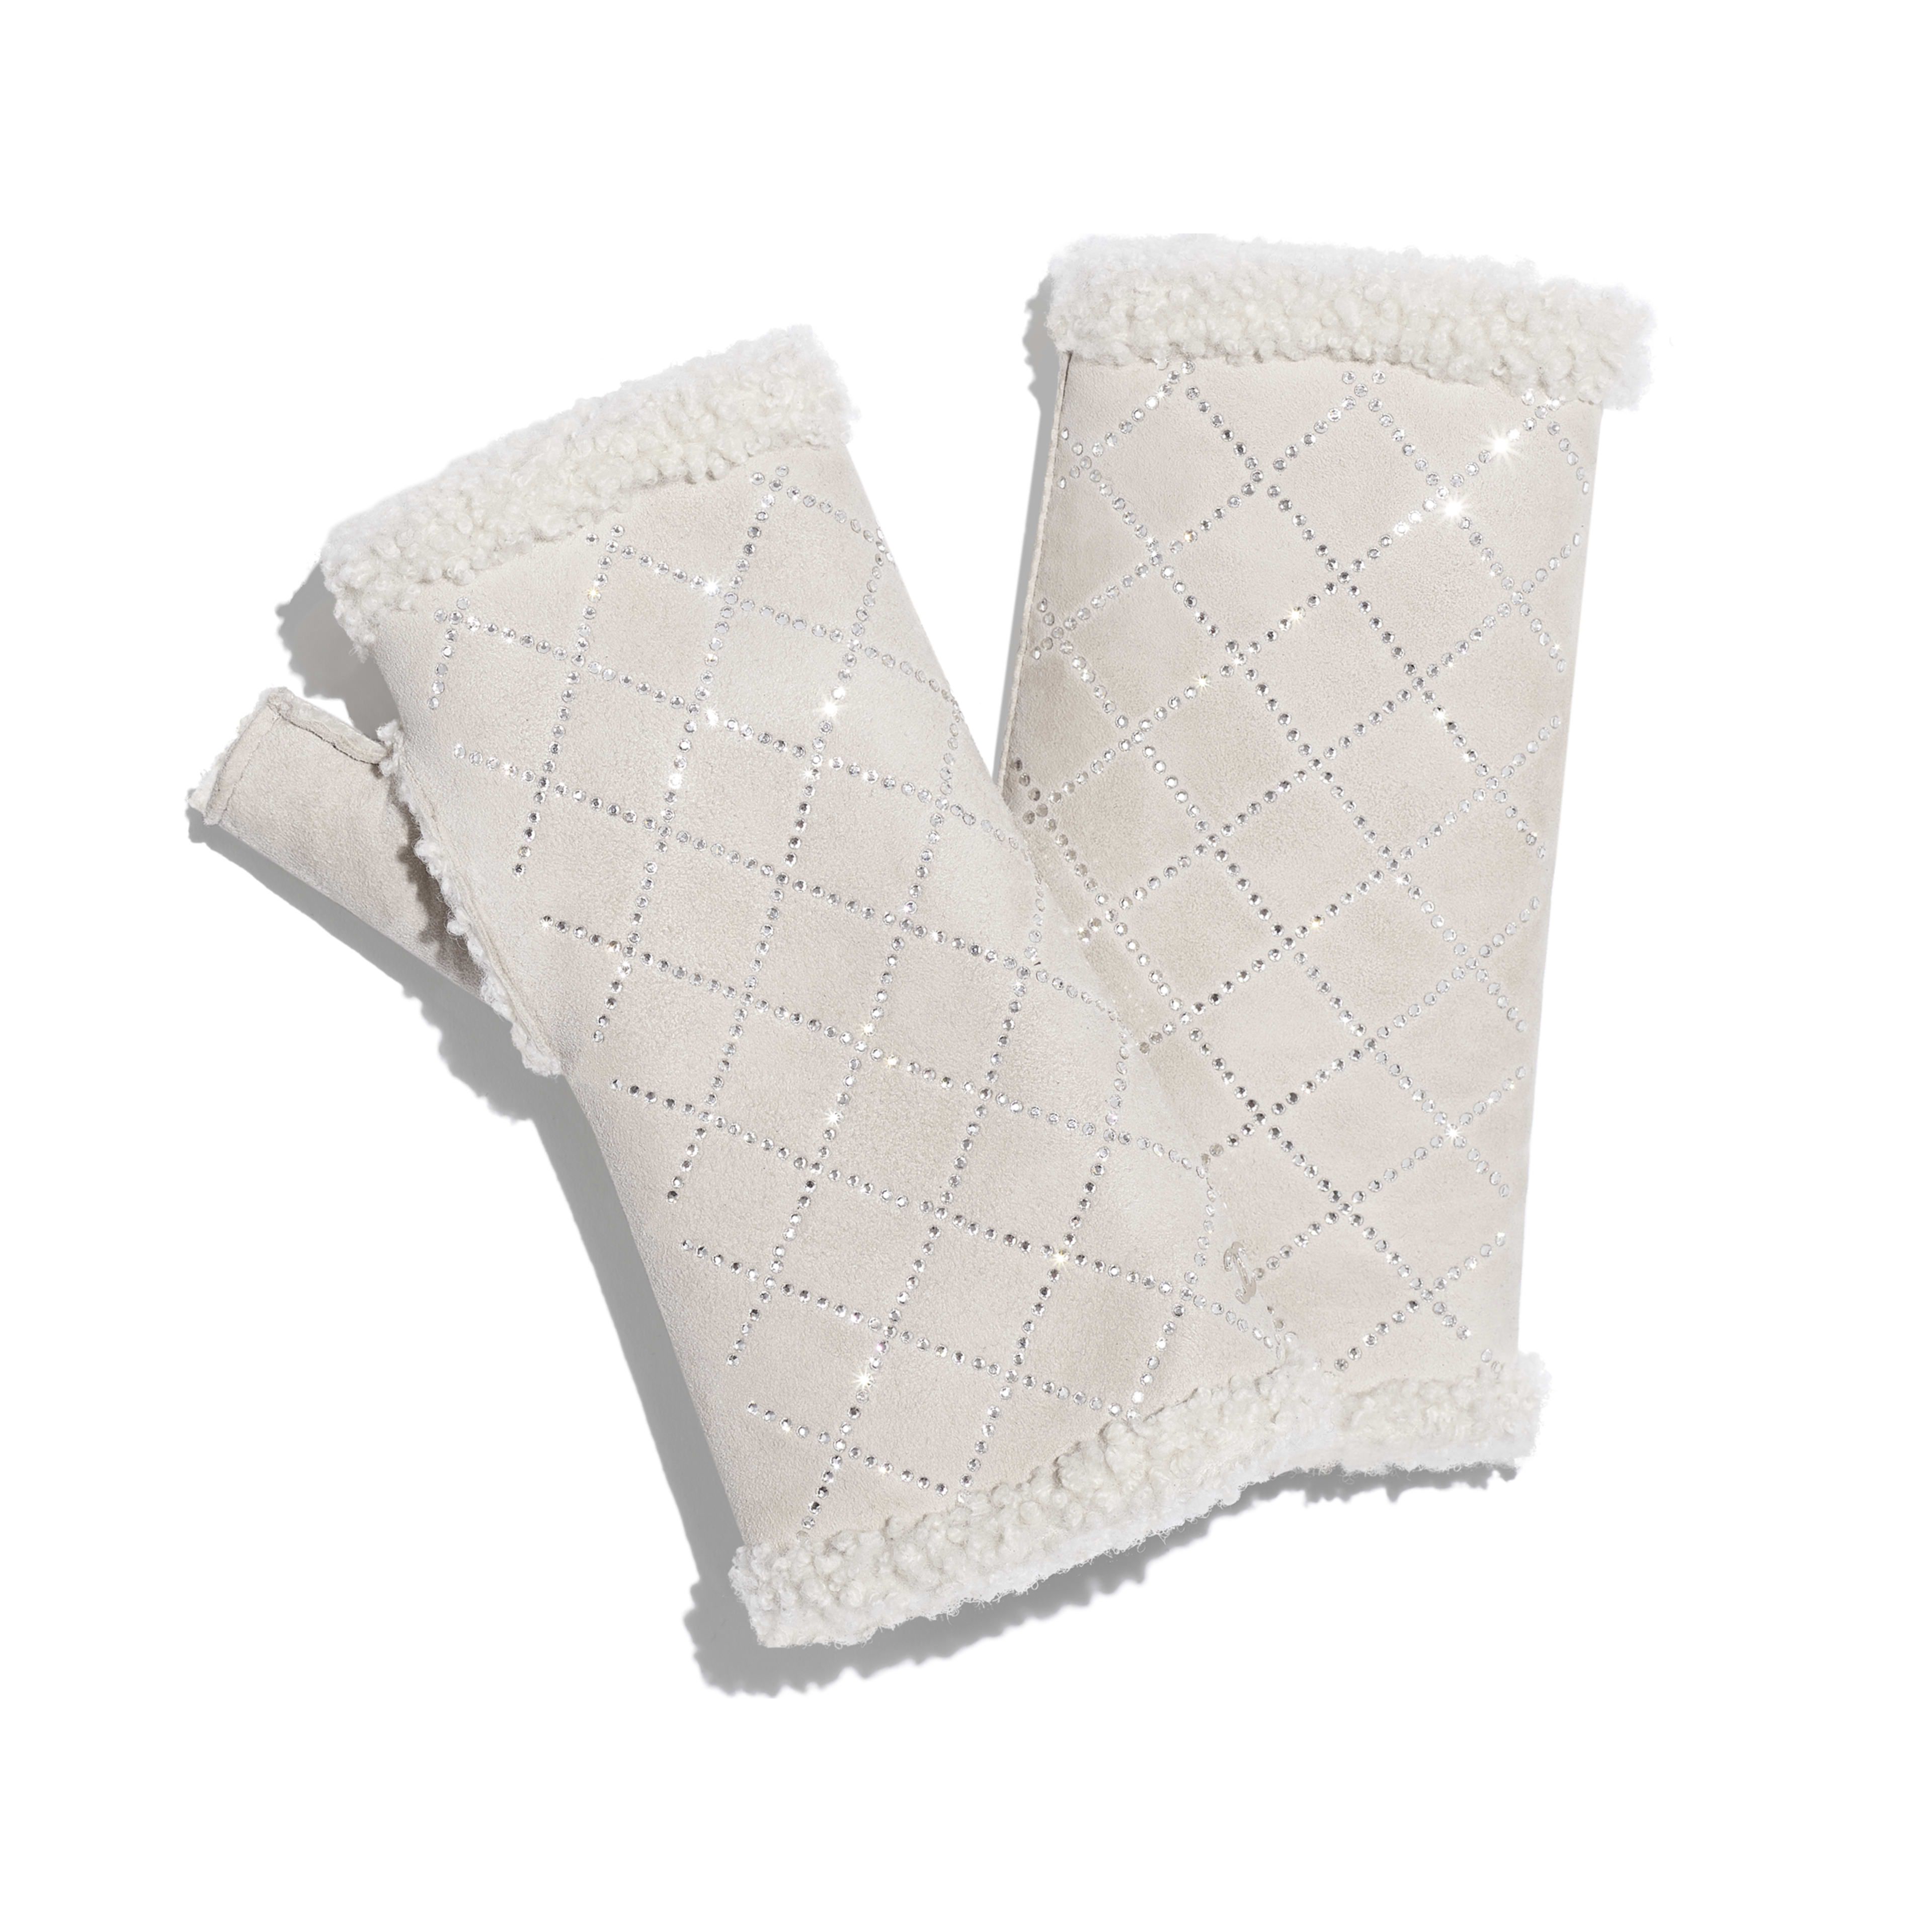 Gloves - Ivory - Shearling & Strass - Default view - see full sized version